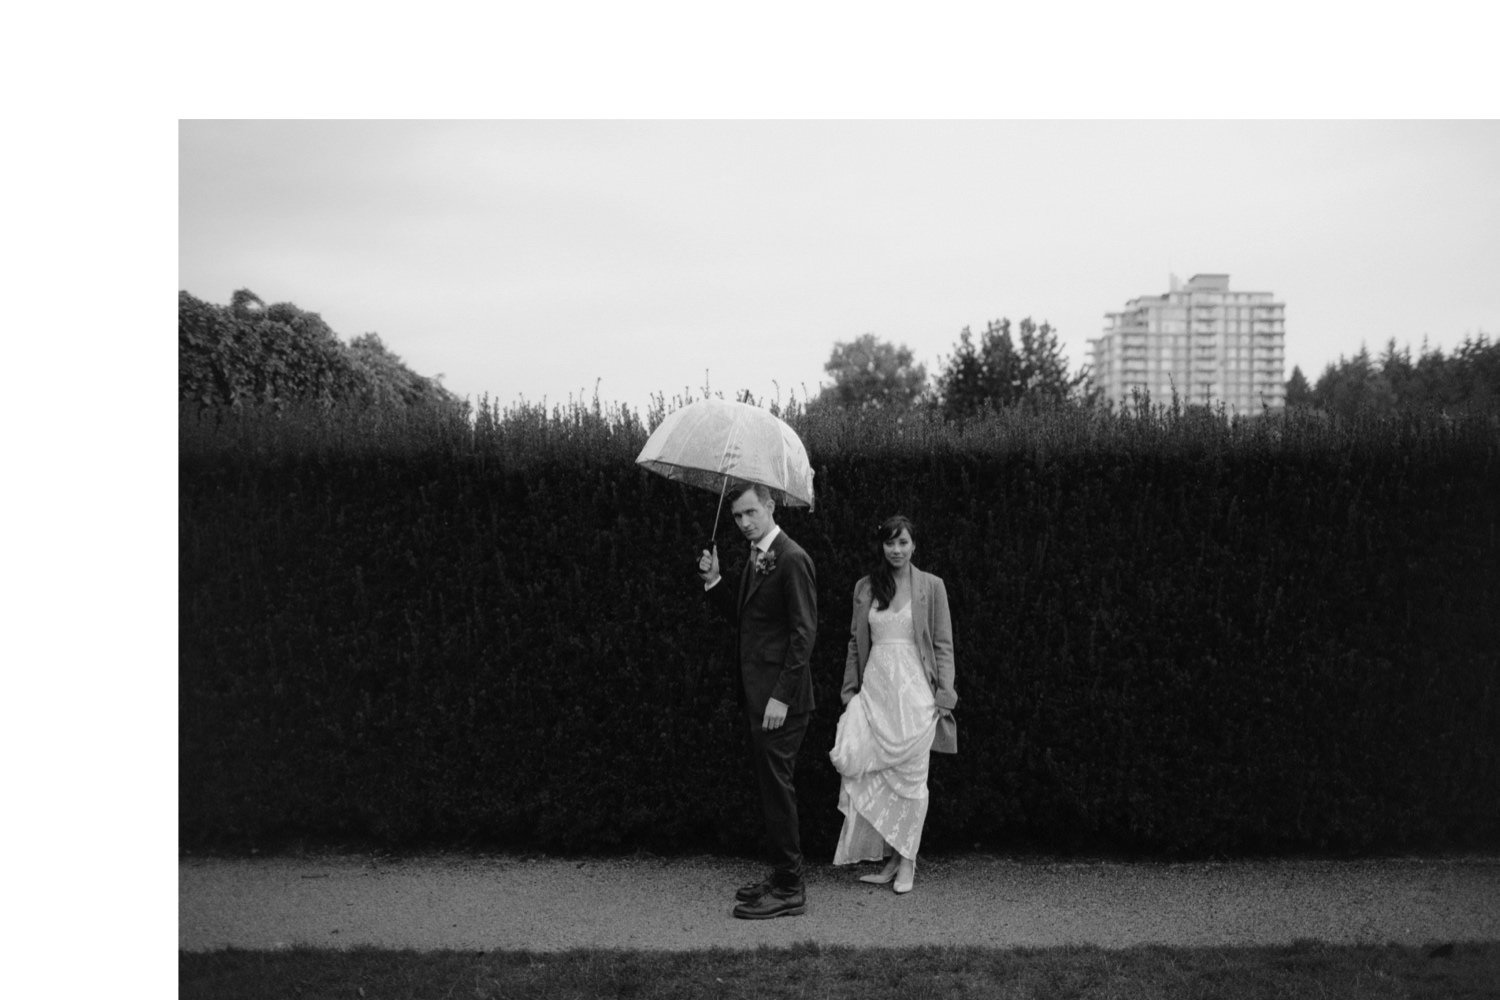 groom holding clear umbrella while bride wears wool coat